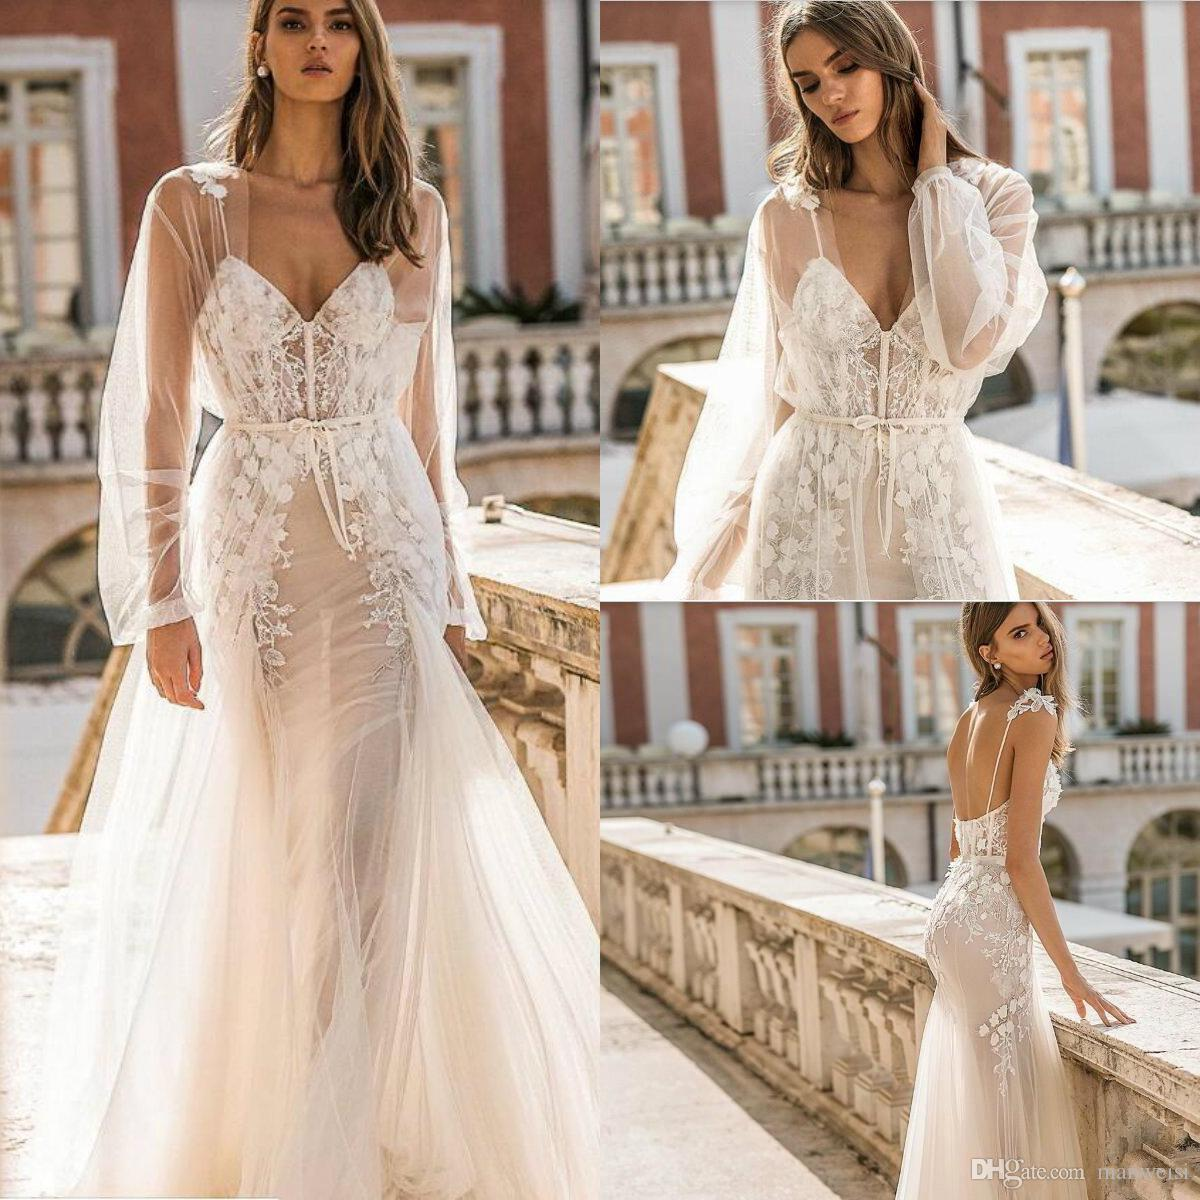 Berta 2019 Mermaid Wedding Dresses With Long Sleeve Jacket Lace Appliques Bridal Gowns Sexy Backless Strap Camo Wedding Dress